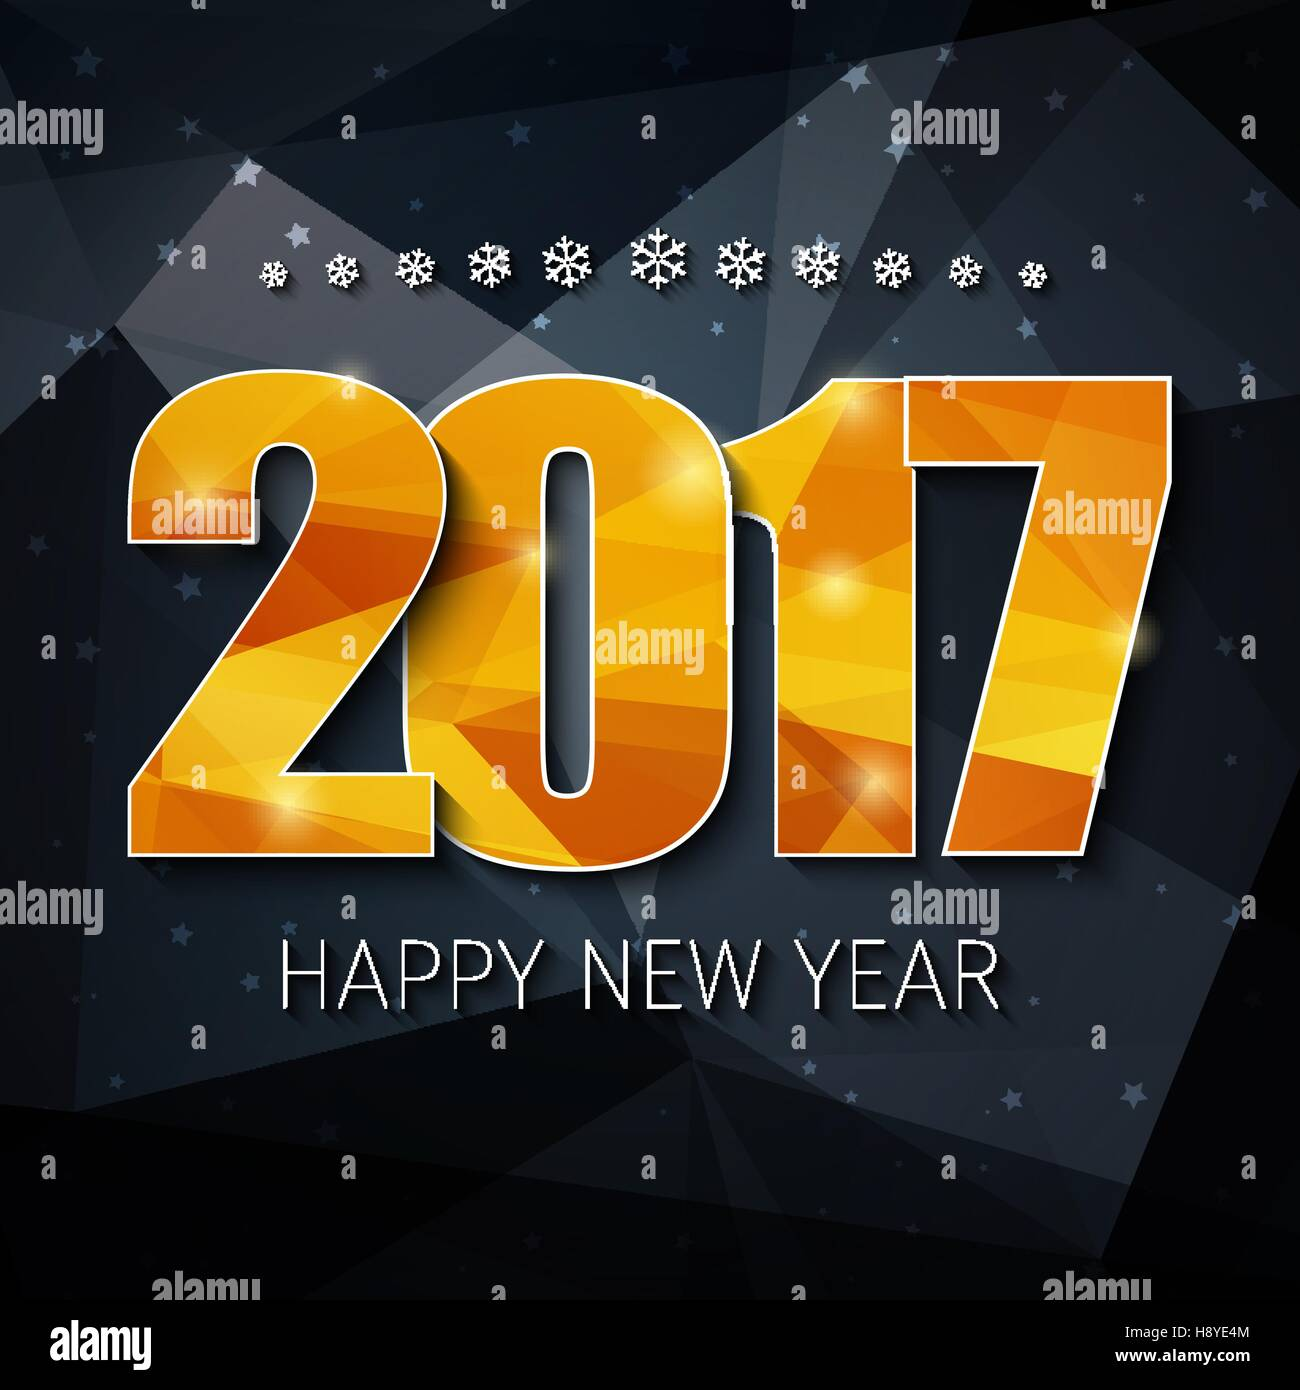 design square web banner background happy new year template polygonal black background and gold abstract numbers 2017 on it vector illustration